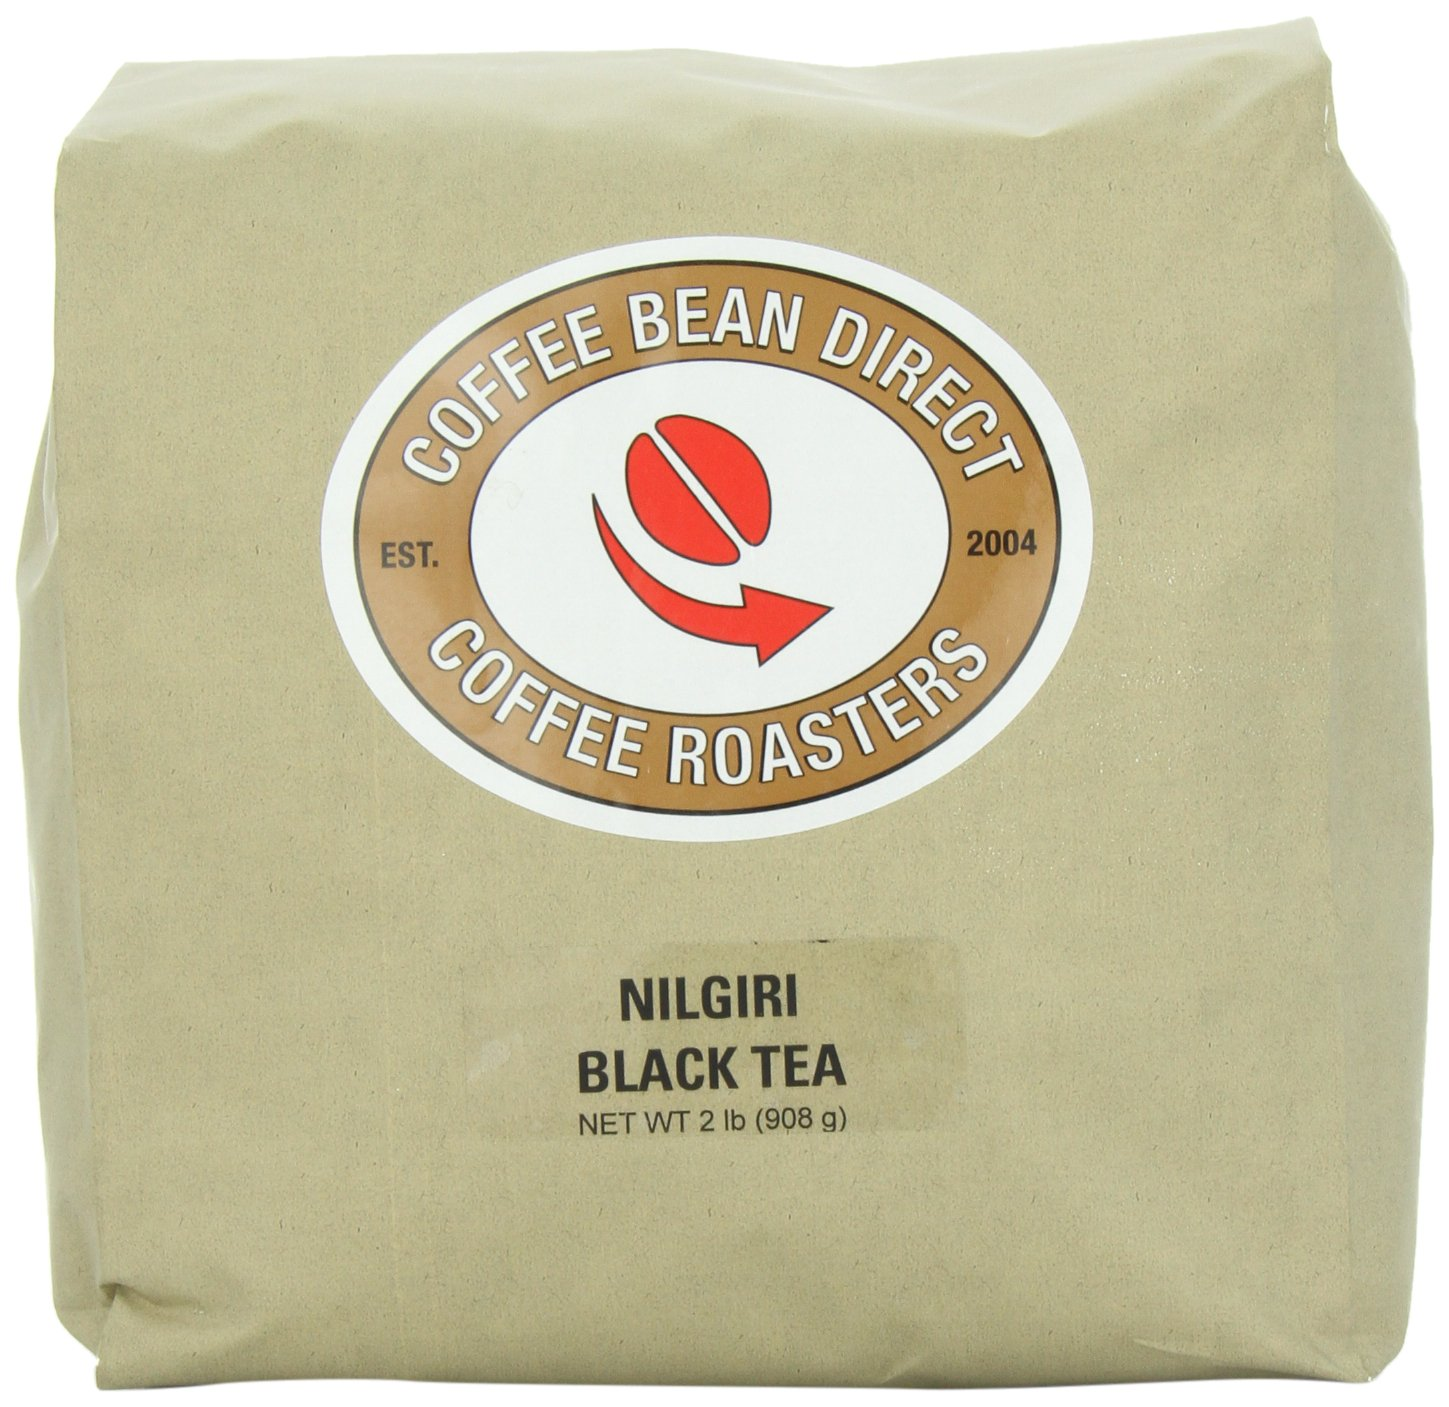 Coffee Bean Direct Nilgiri Loose Leaf Tea, 2 Pound Bag by Coffee Bean Direct